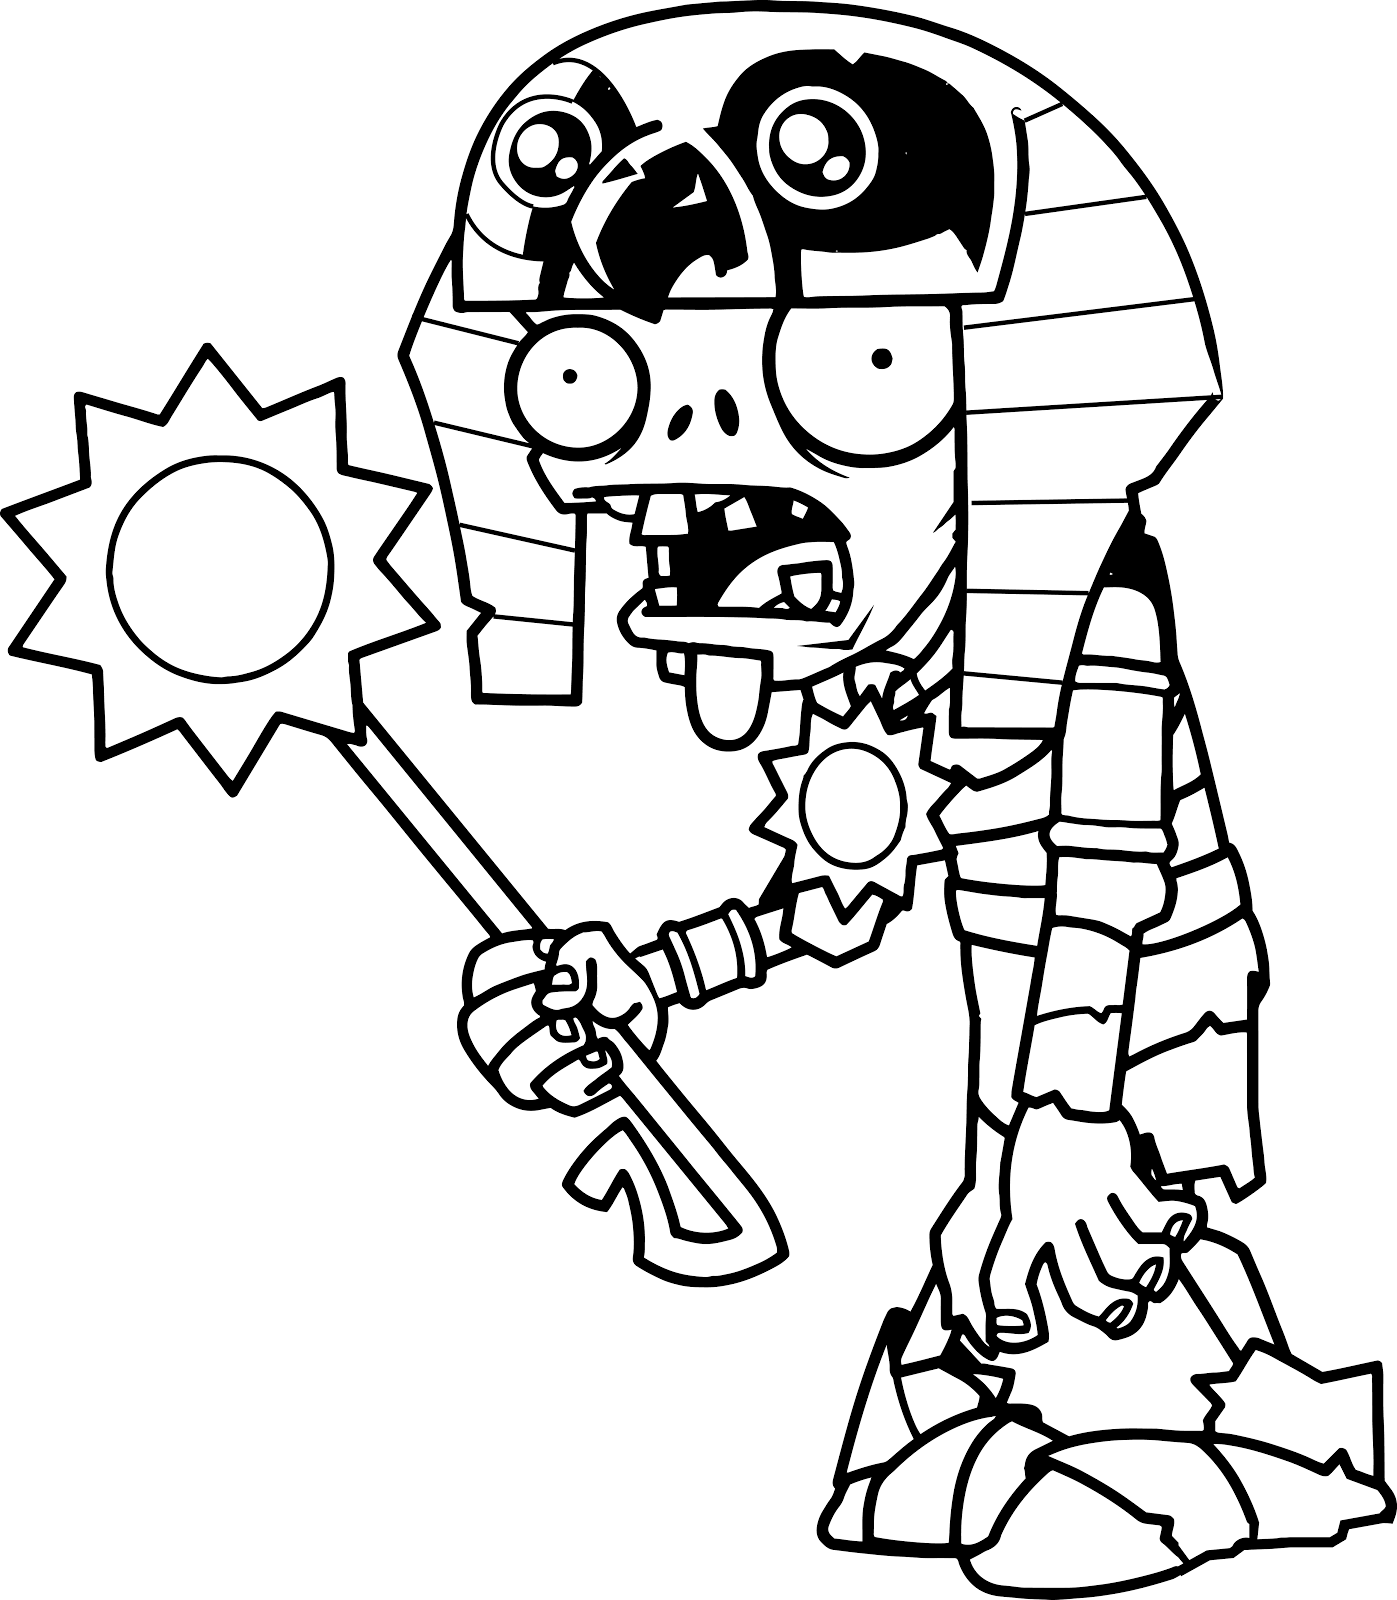 printable coloring pages zombies get this plants vs zombies coloring pages kids printable pages coloring zombies printable